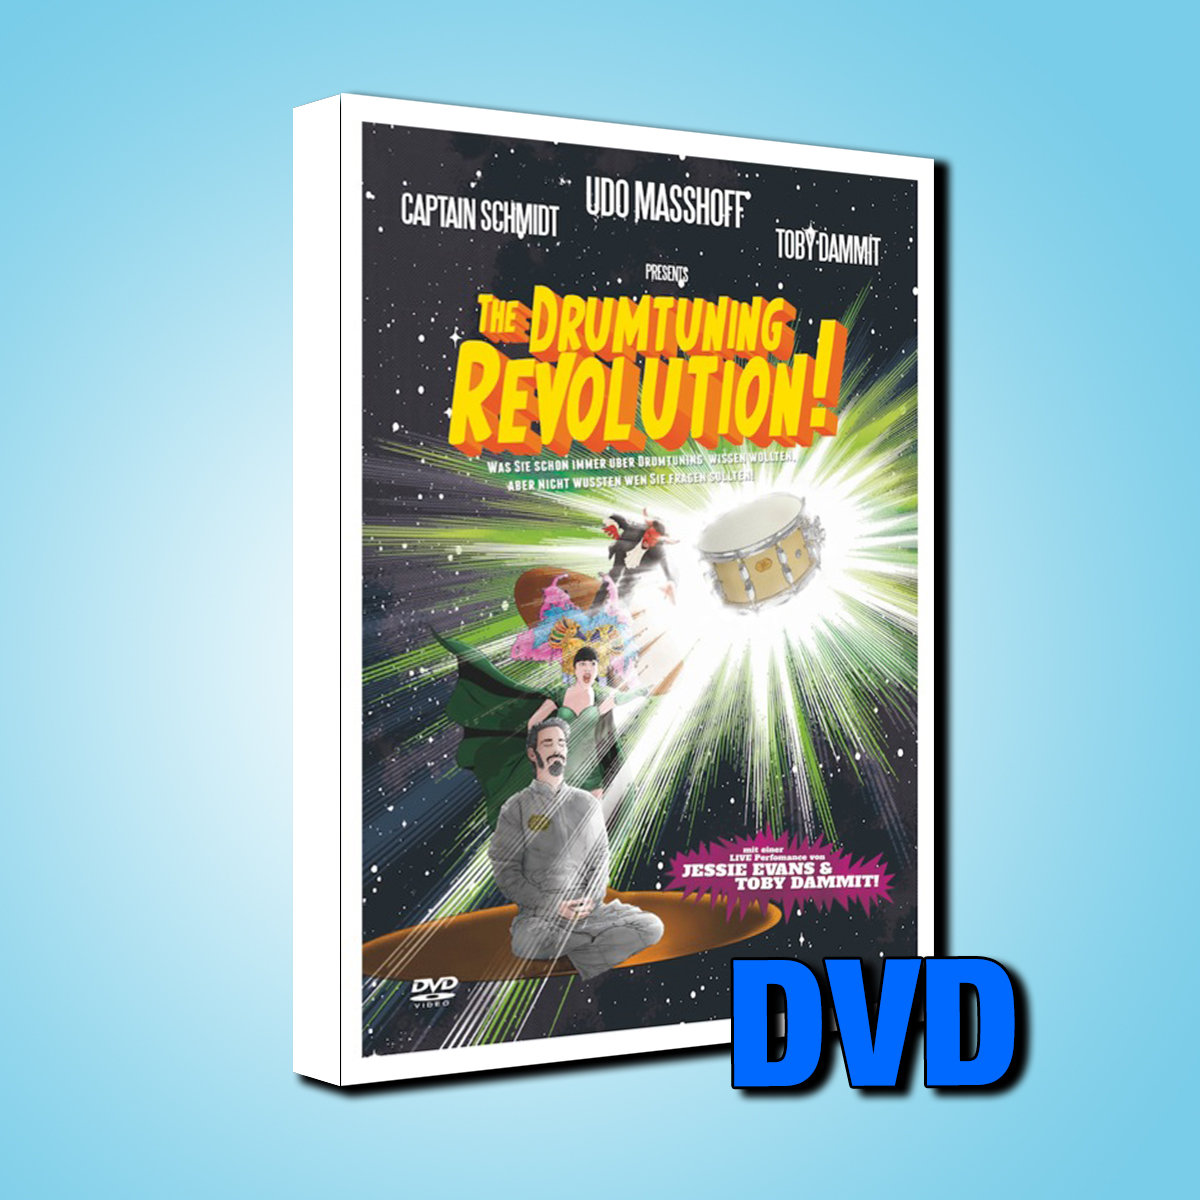 The Drumtuning Revolution / DVD / German Language only